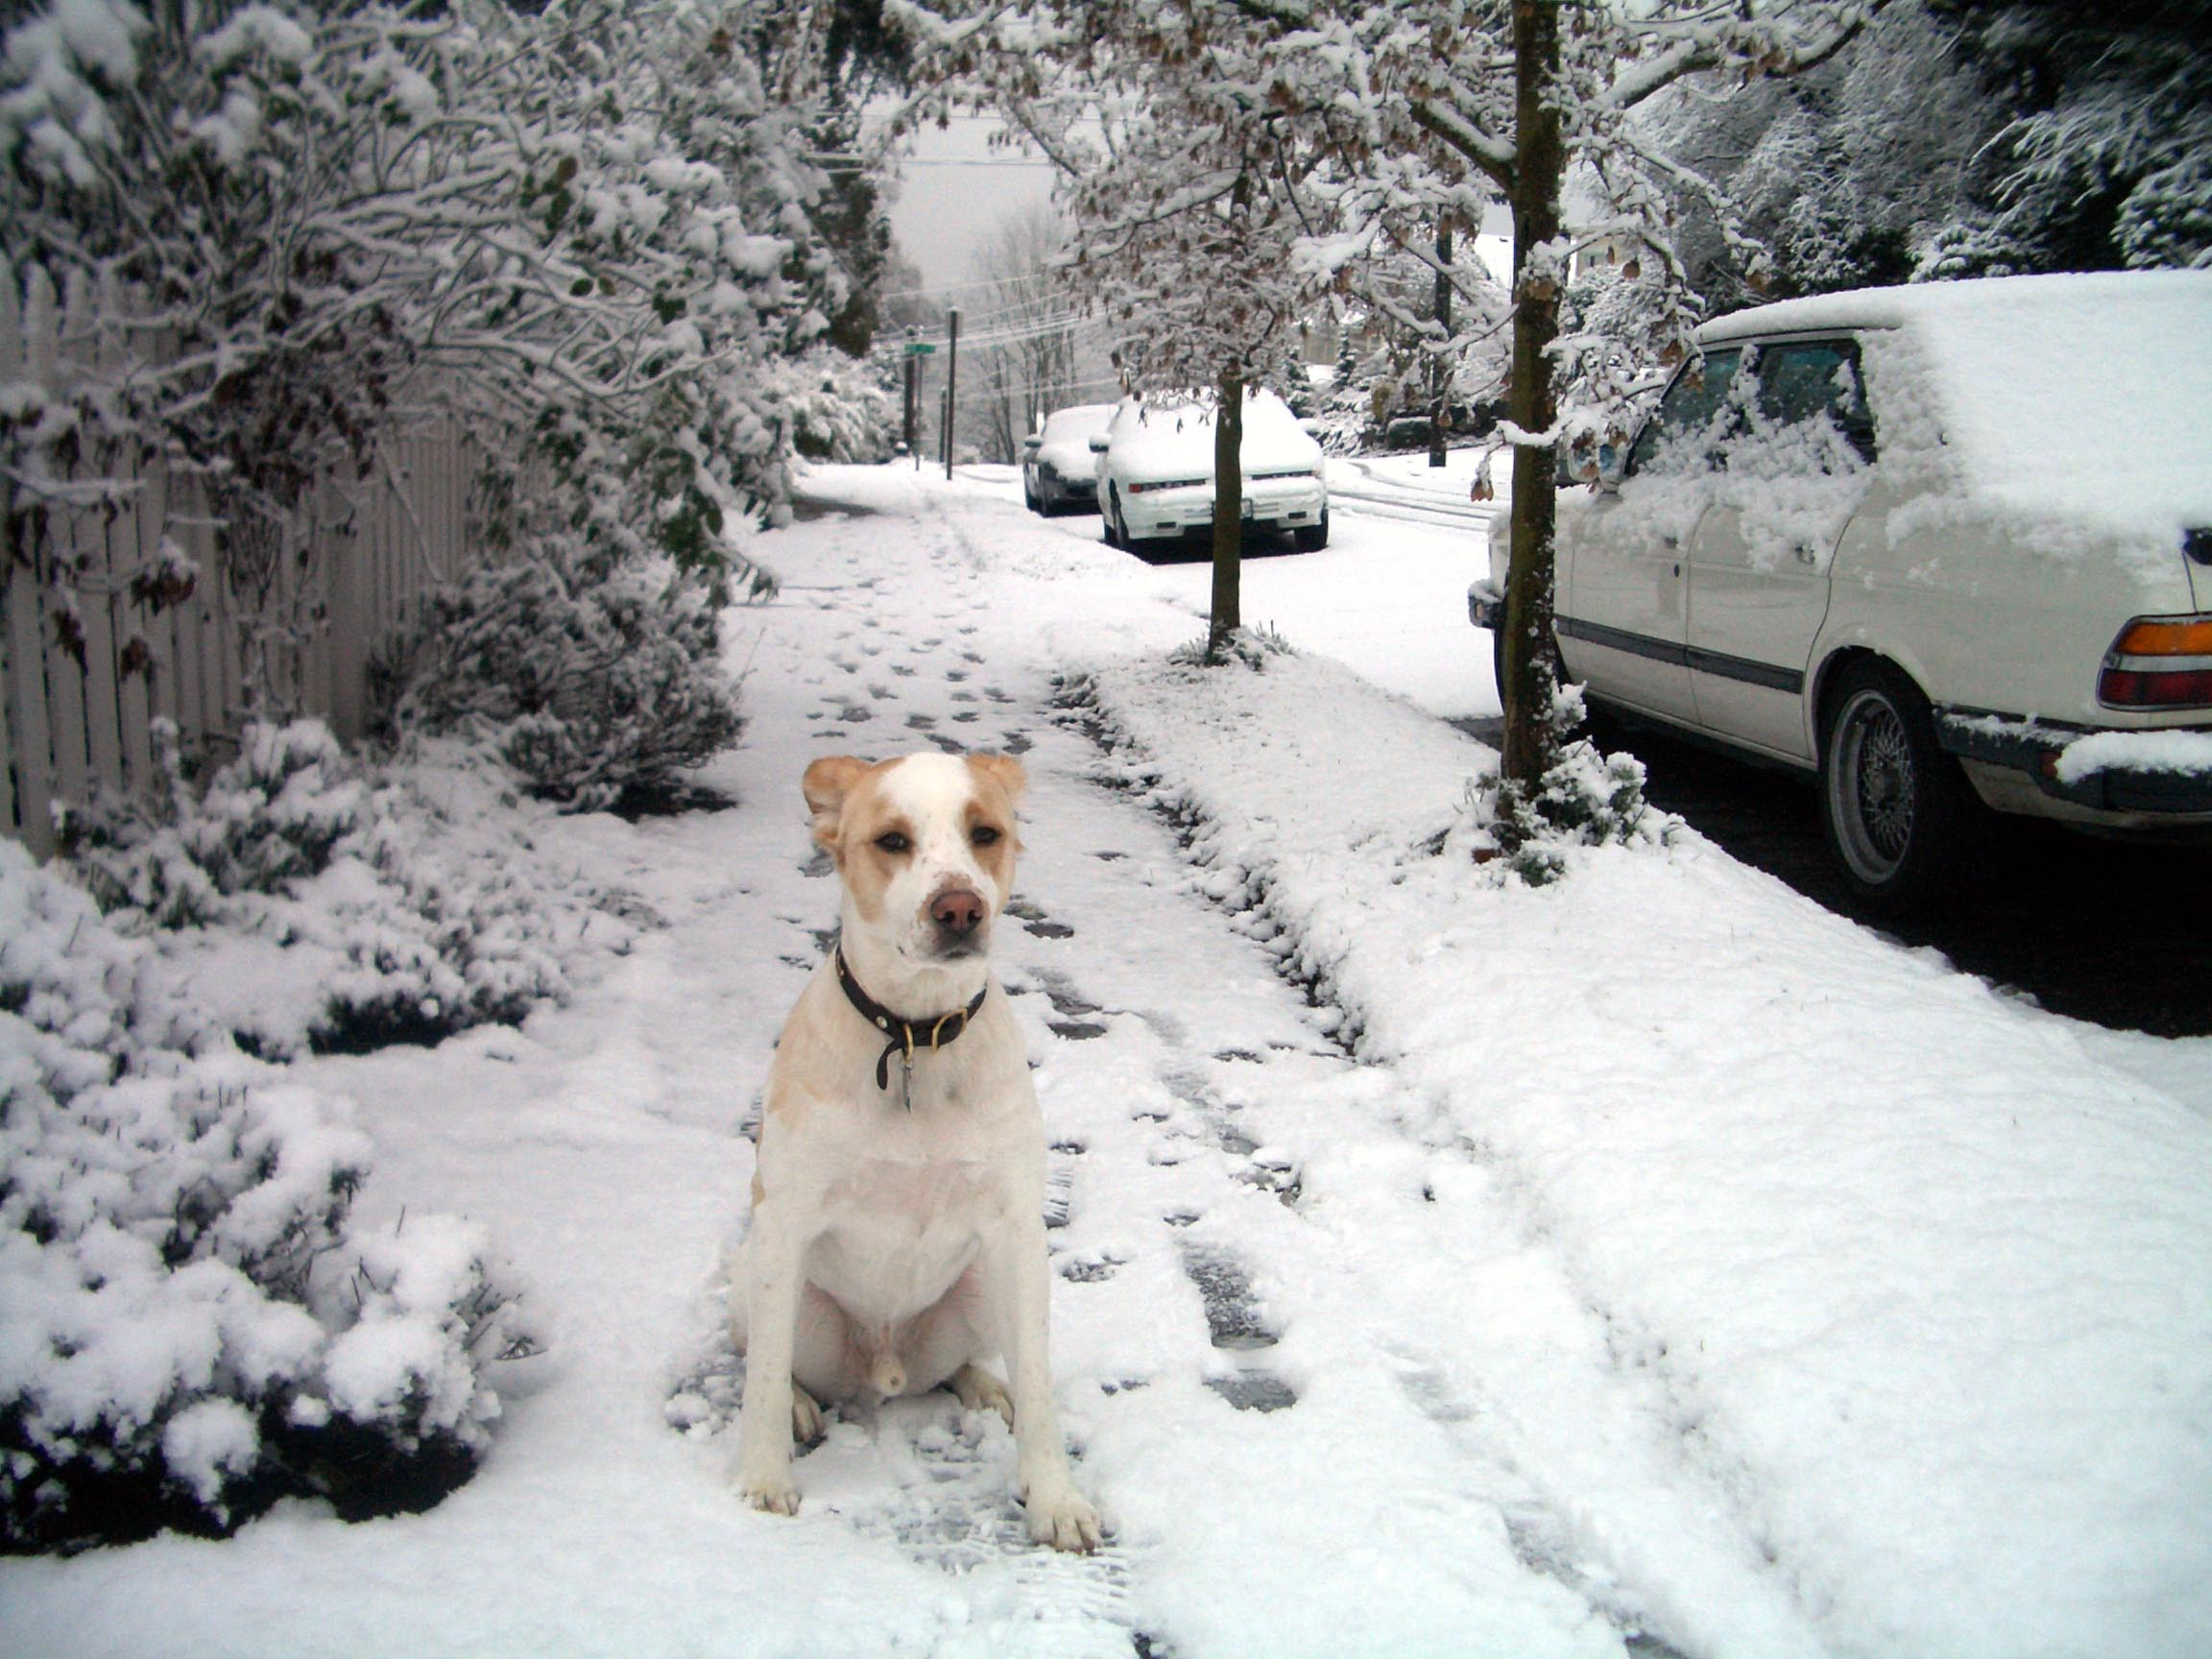 zach the dog in the snow